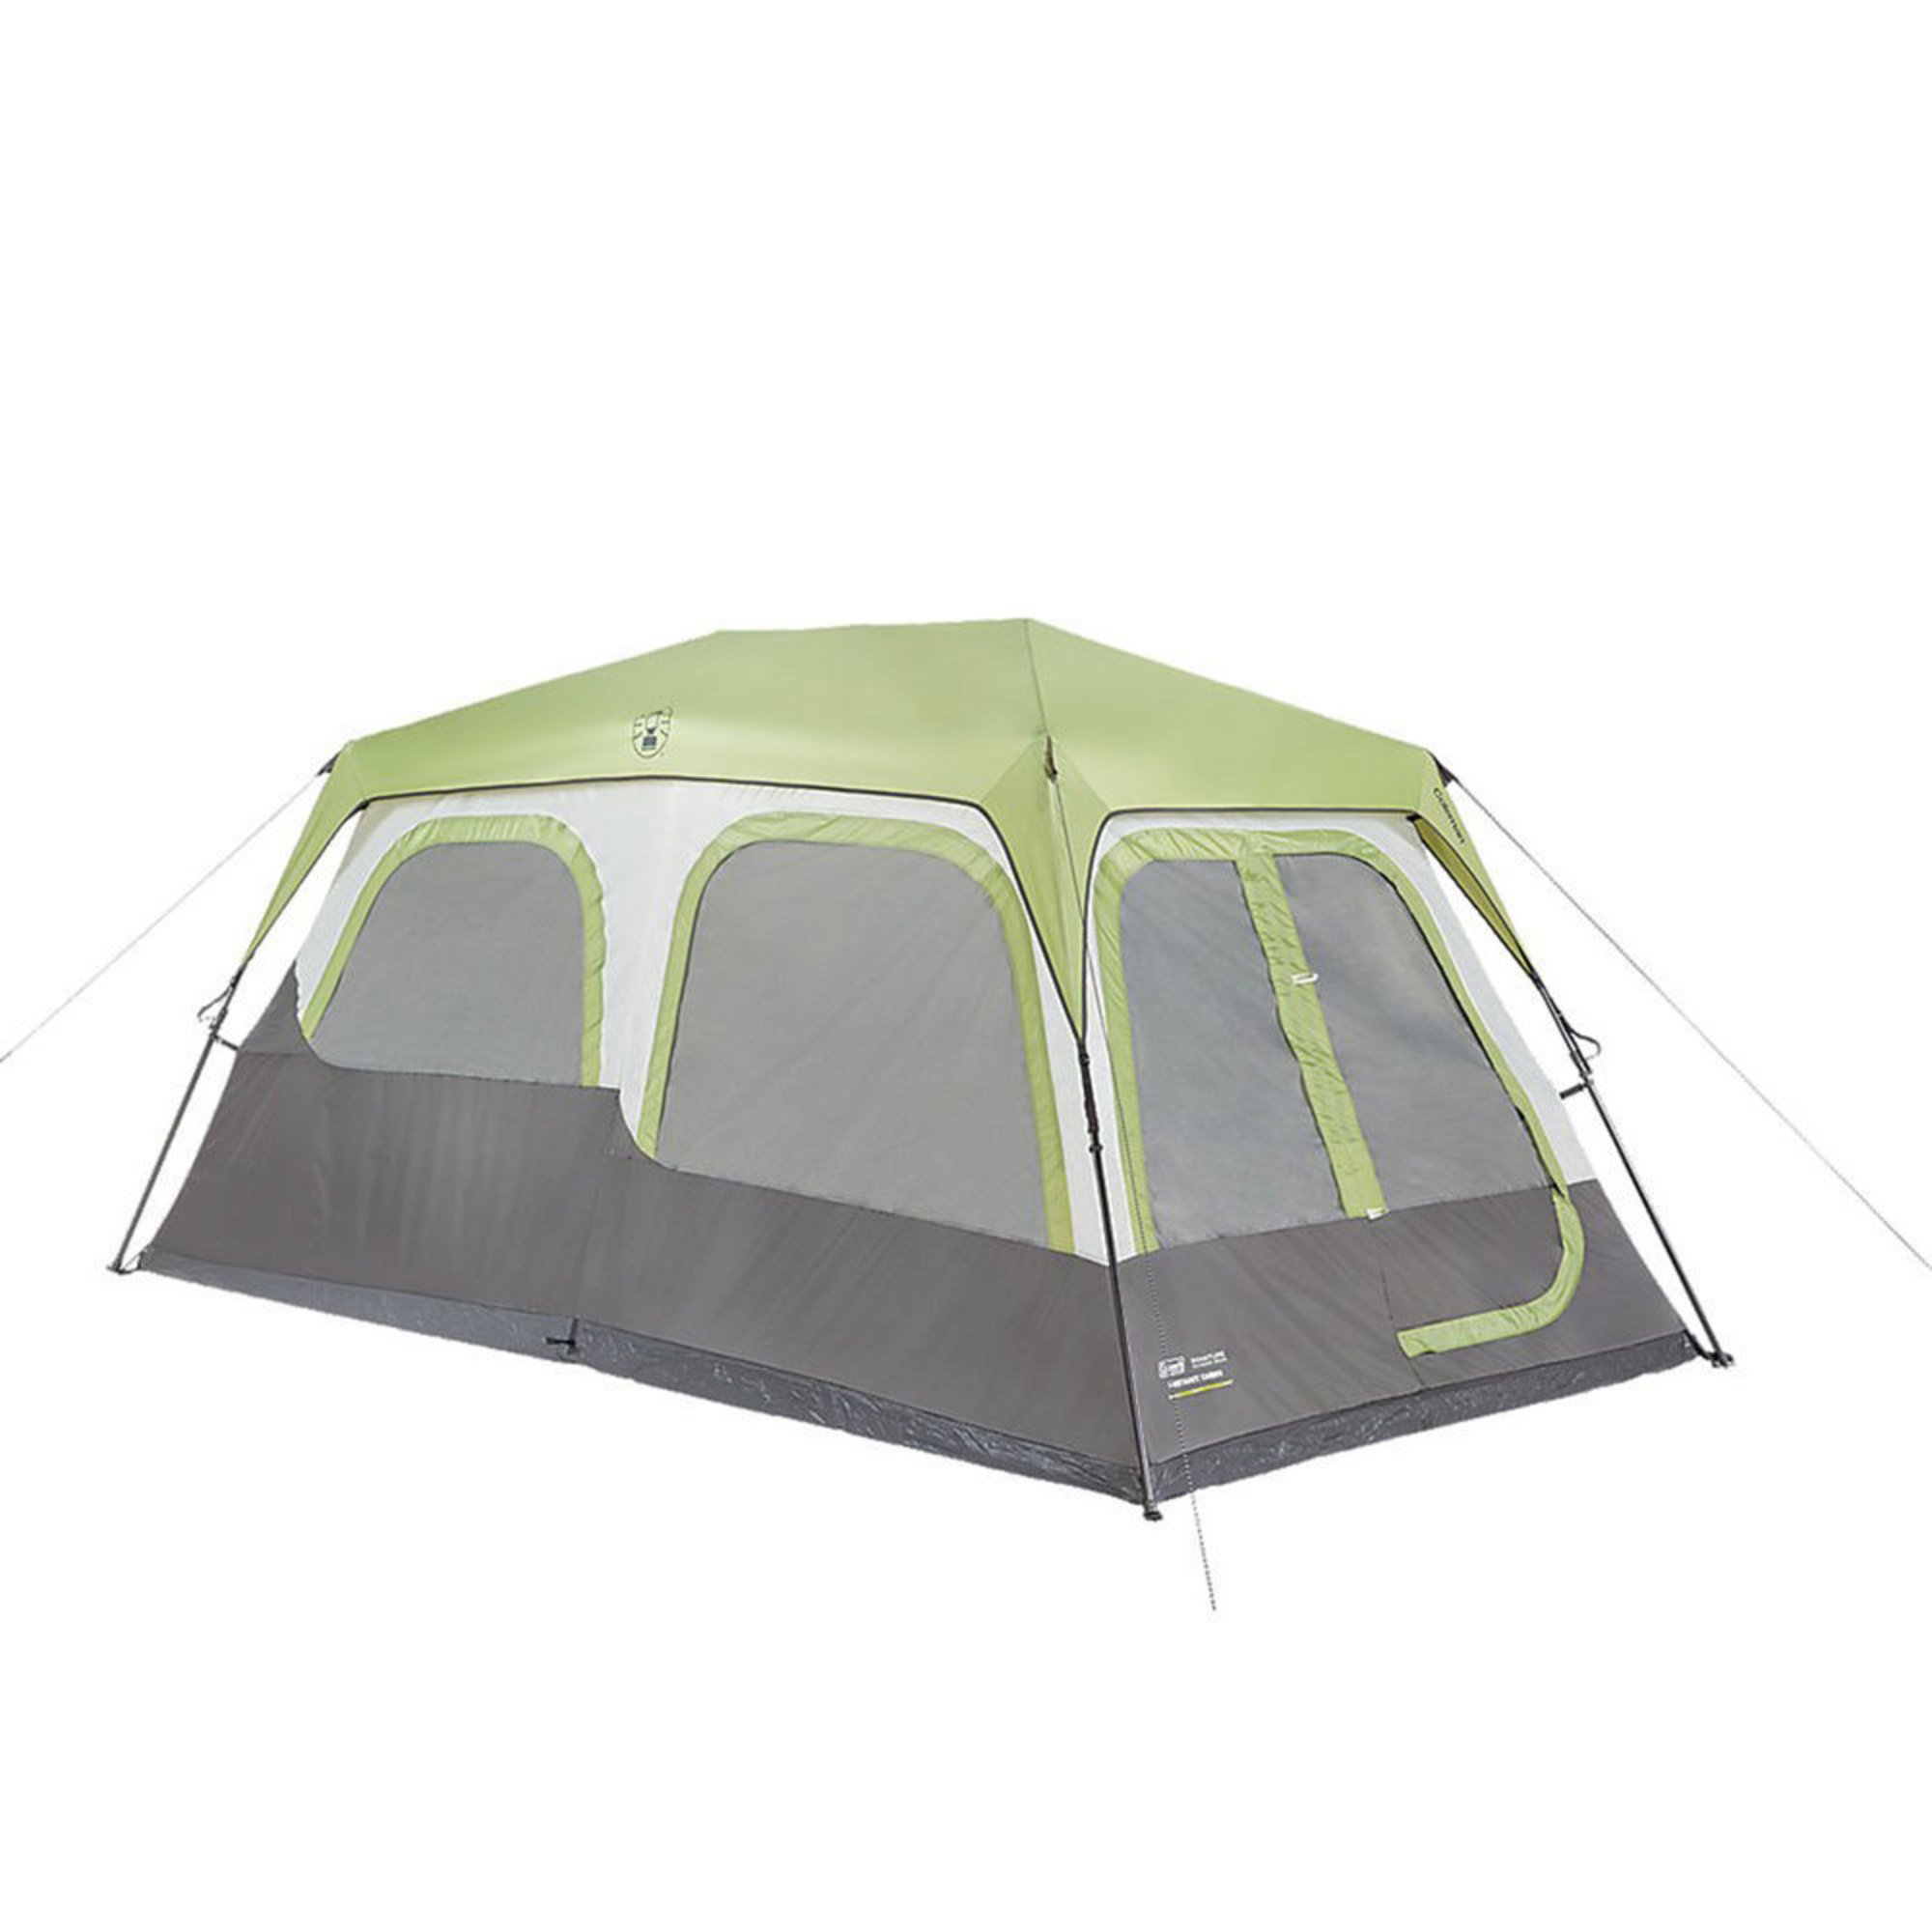 Coleman. Coleman Instant Cabin 8-Person Tent ...  sc 1 st  Navy Exchange & Coleman Instant Cabin 8-person Tent With Rain Fly | Tents - Shop ...